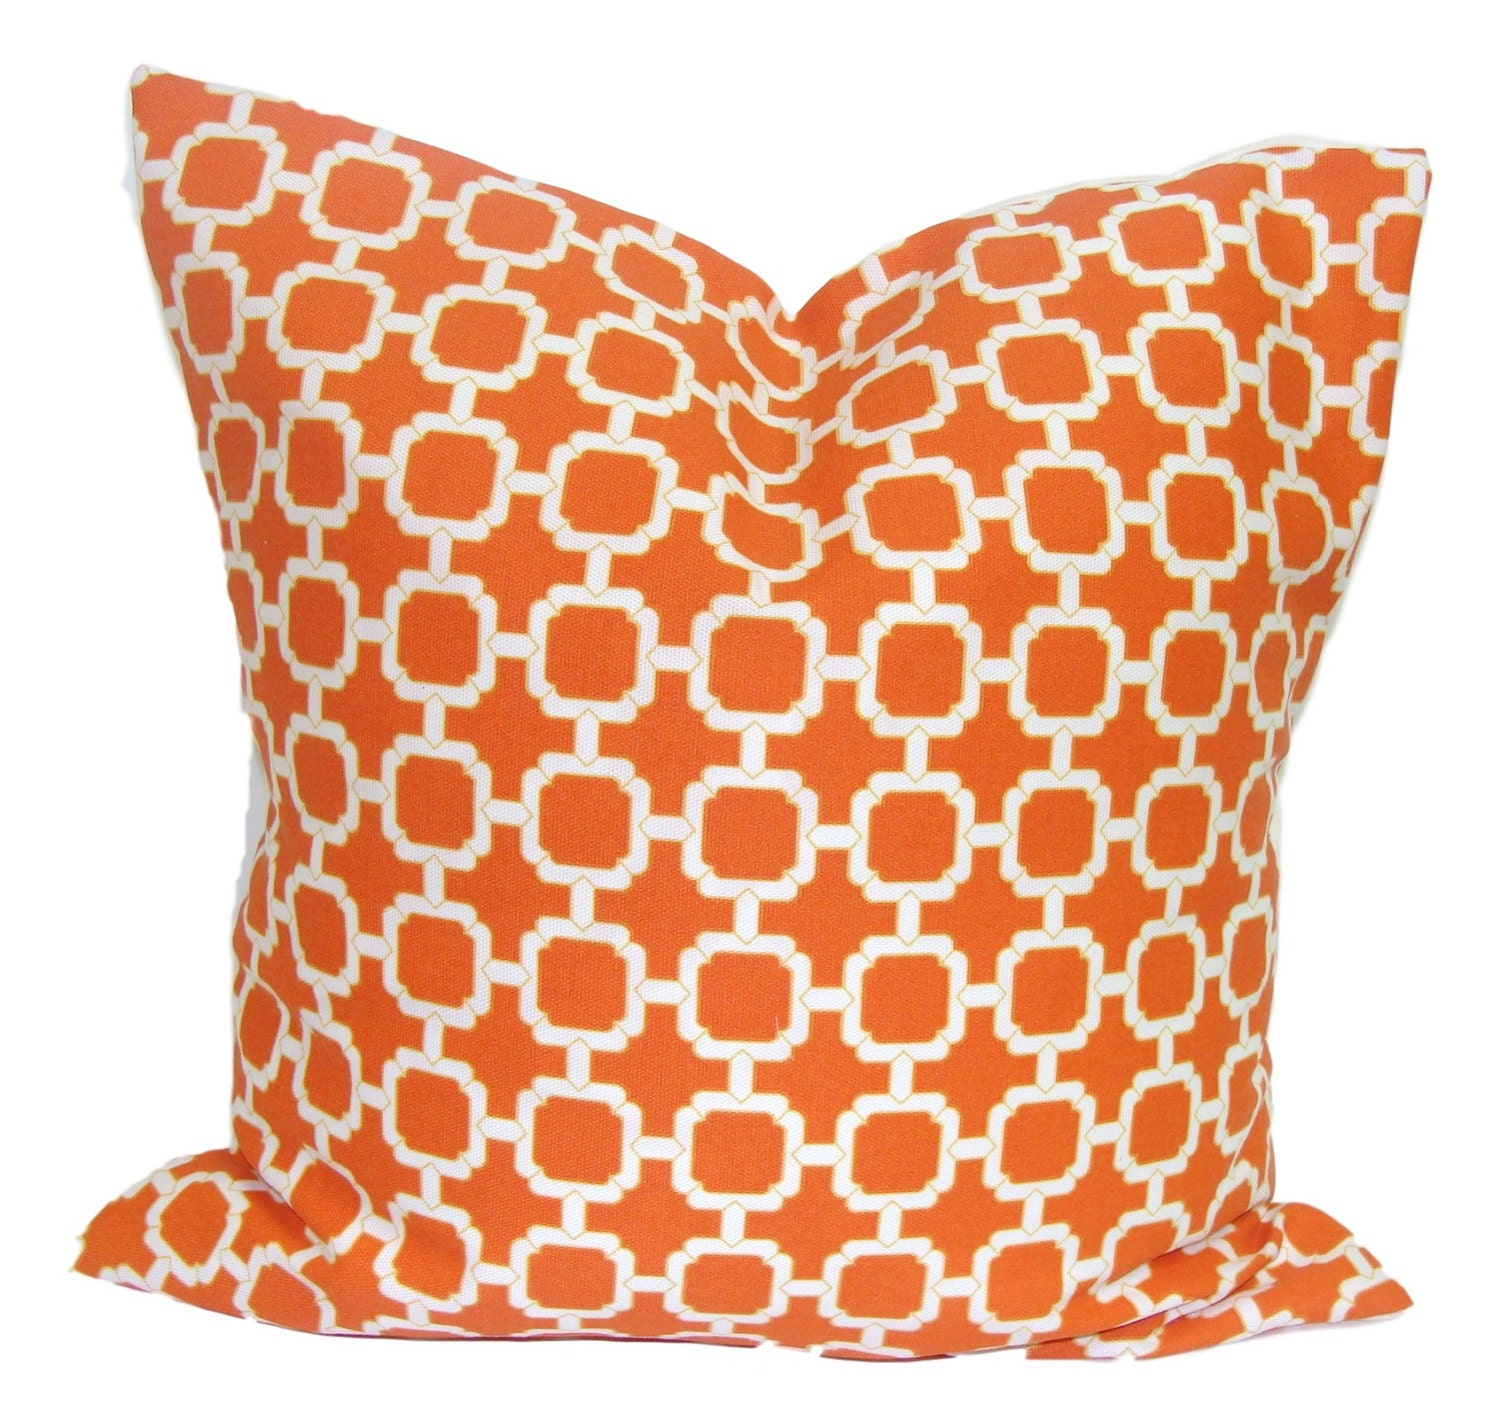 OUTDOOR PILLOWS Outdoor Pillow Cover Orange Decorative